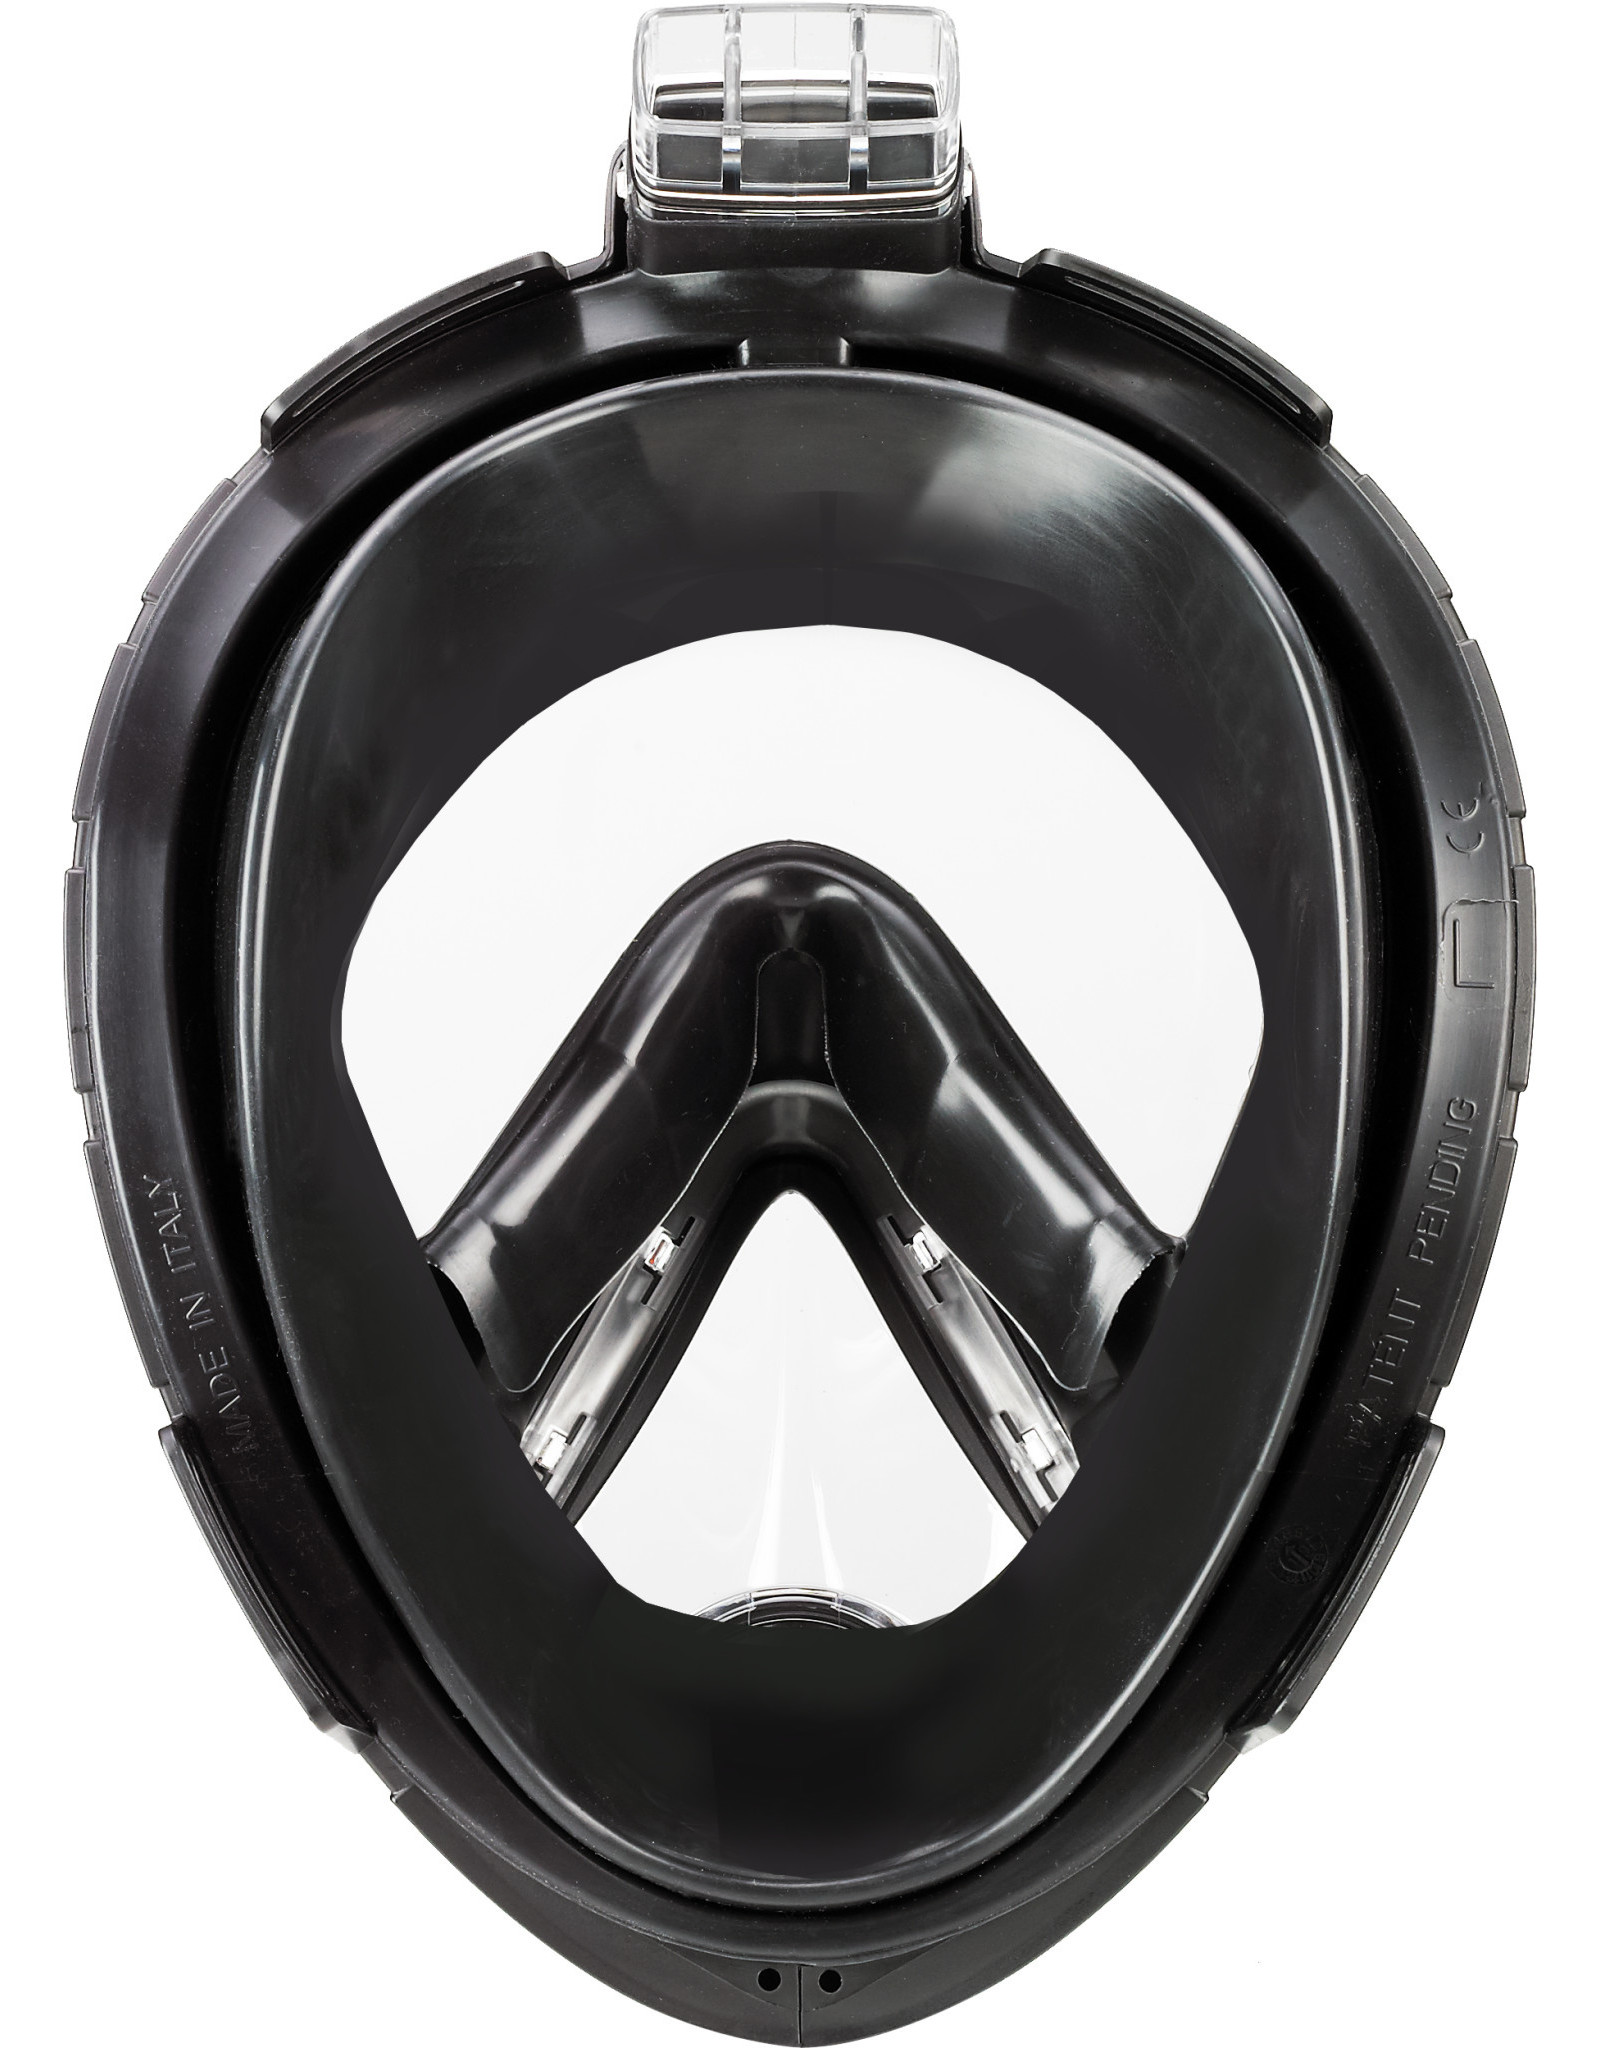 TUSA TUSA Full-Face Snorkeling Mask - Black